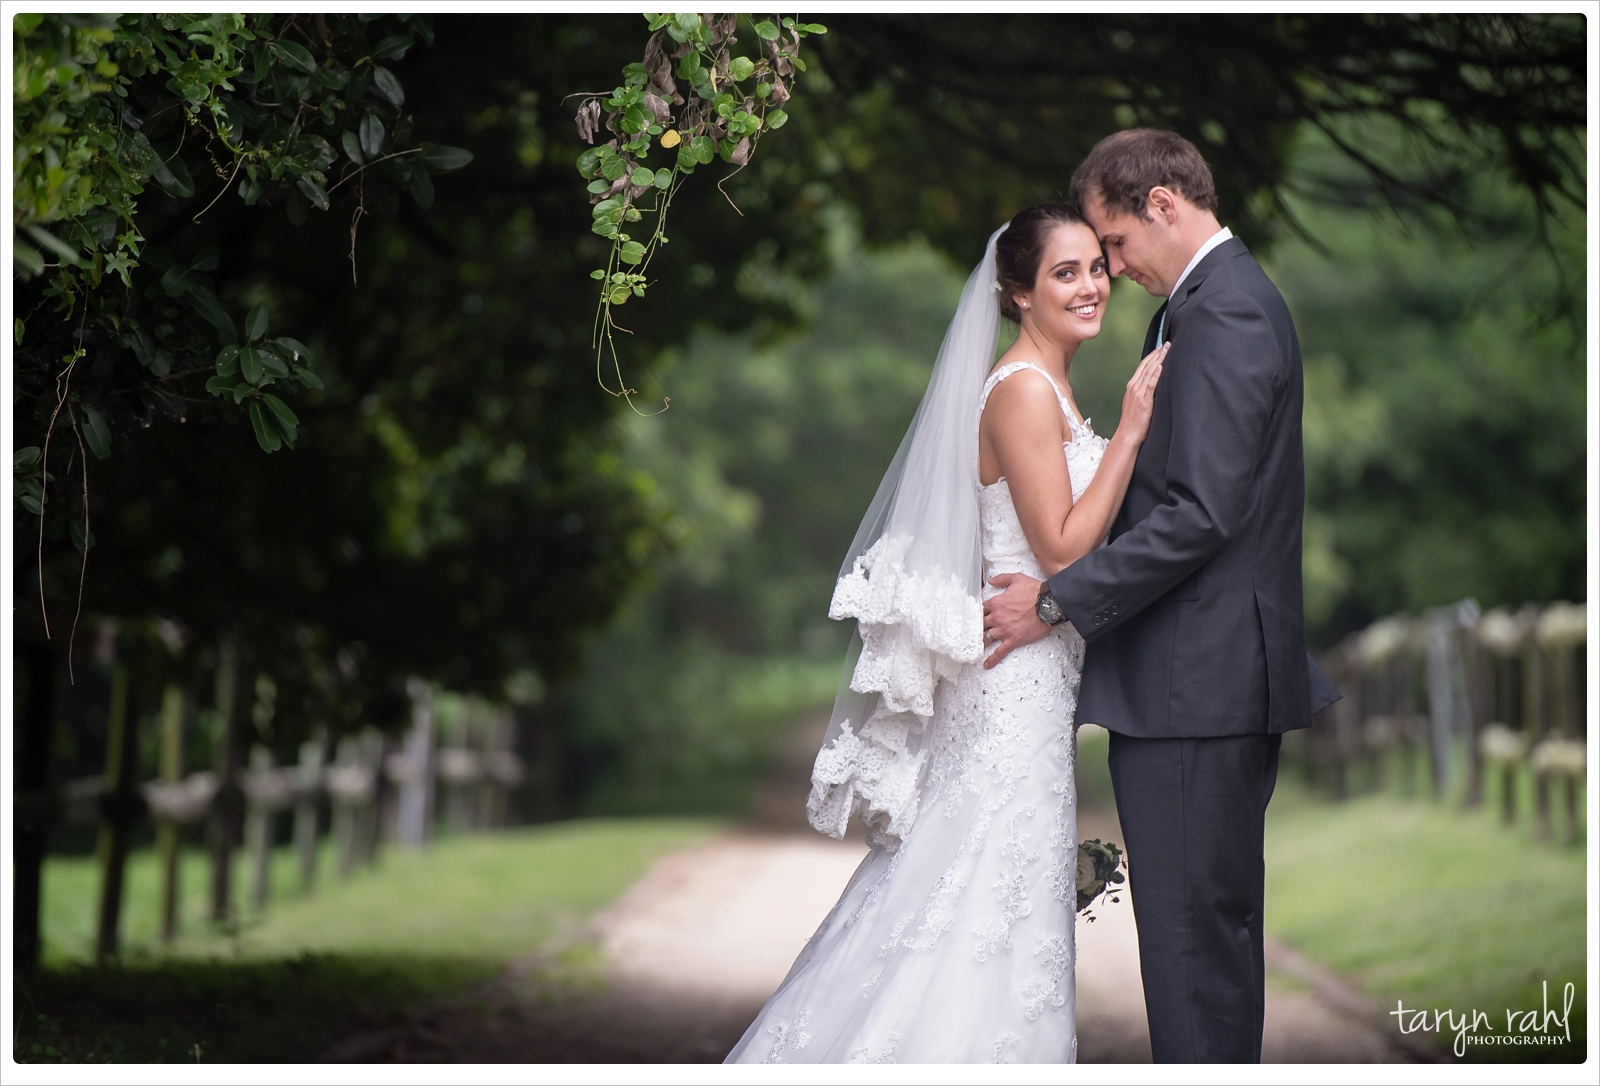 Celeste and Reghardt | Wedding at The Plantation